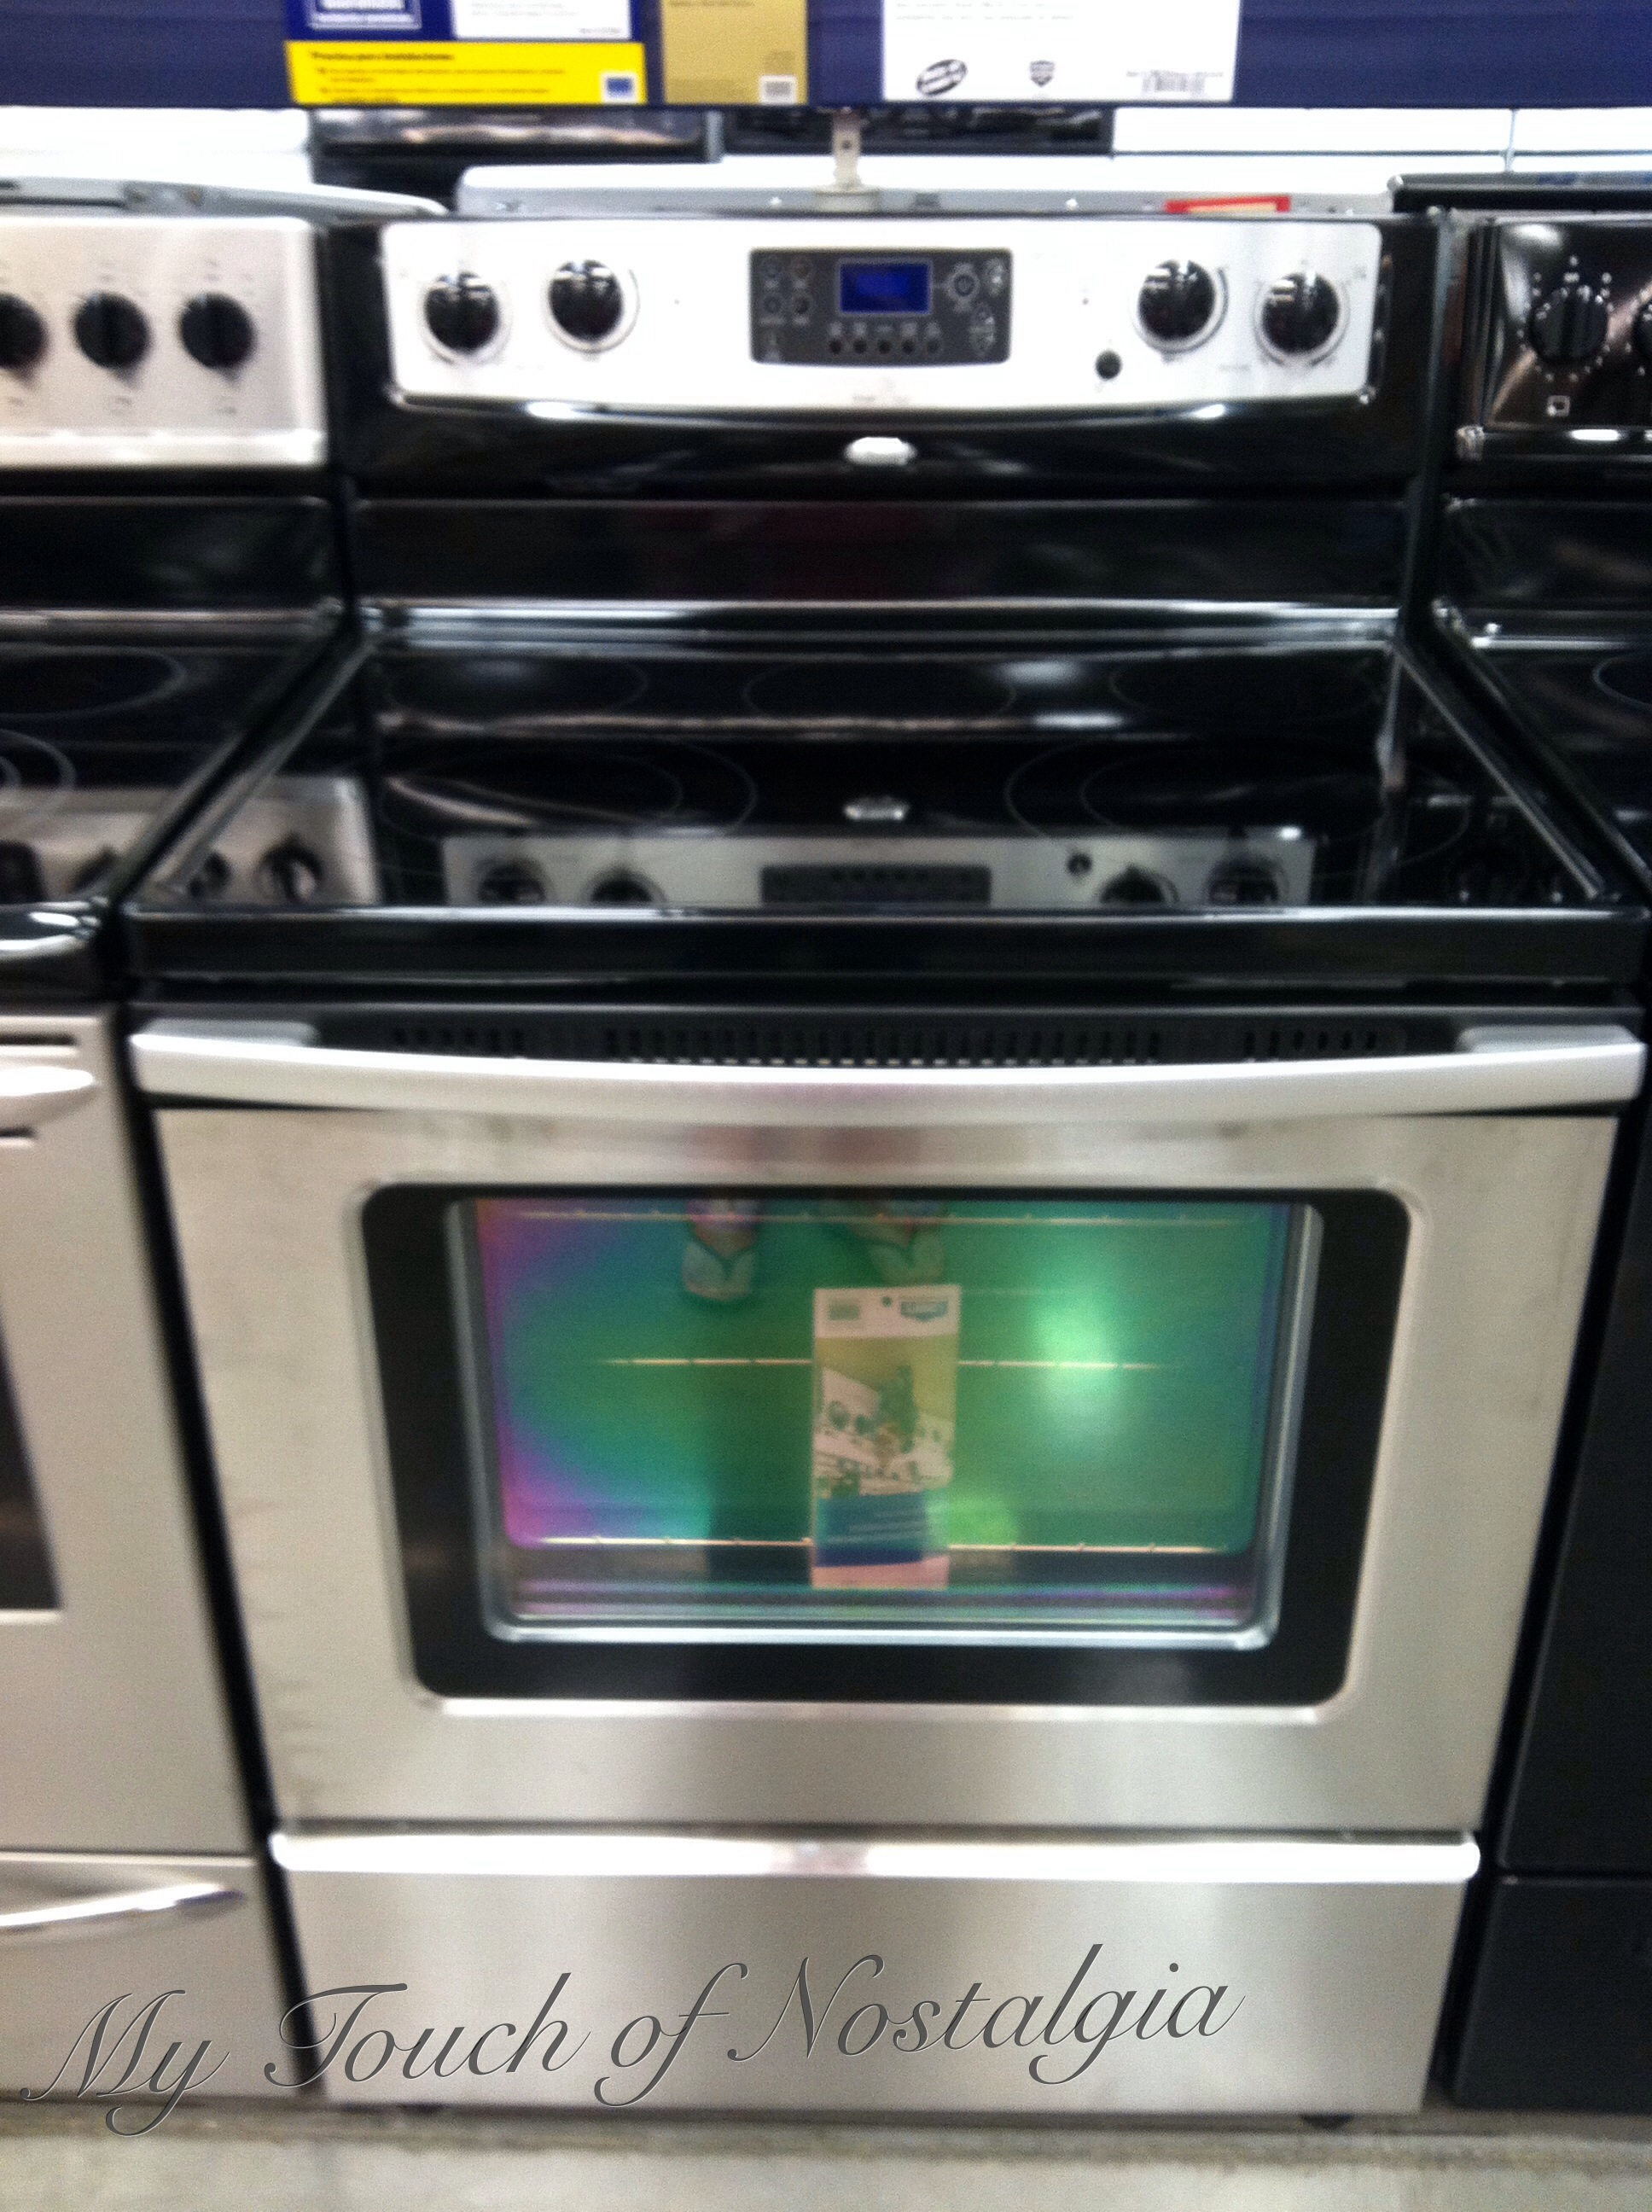 Uncategorized Nostalgic Kitchen Appliances lowes my touch of nostalgia course when i show mr his refrigerator photos well that the one he has to have so on sales weekend head purchase new